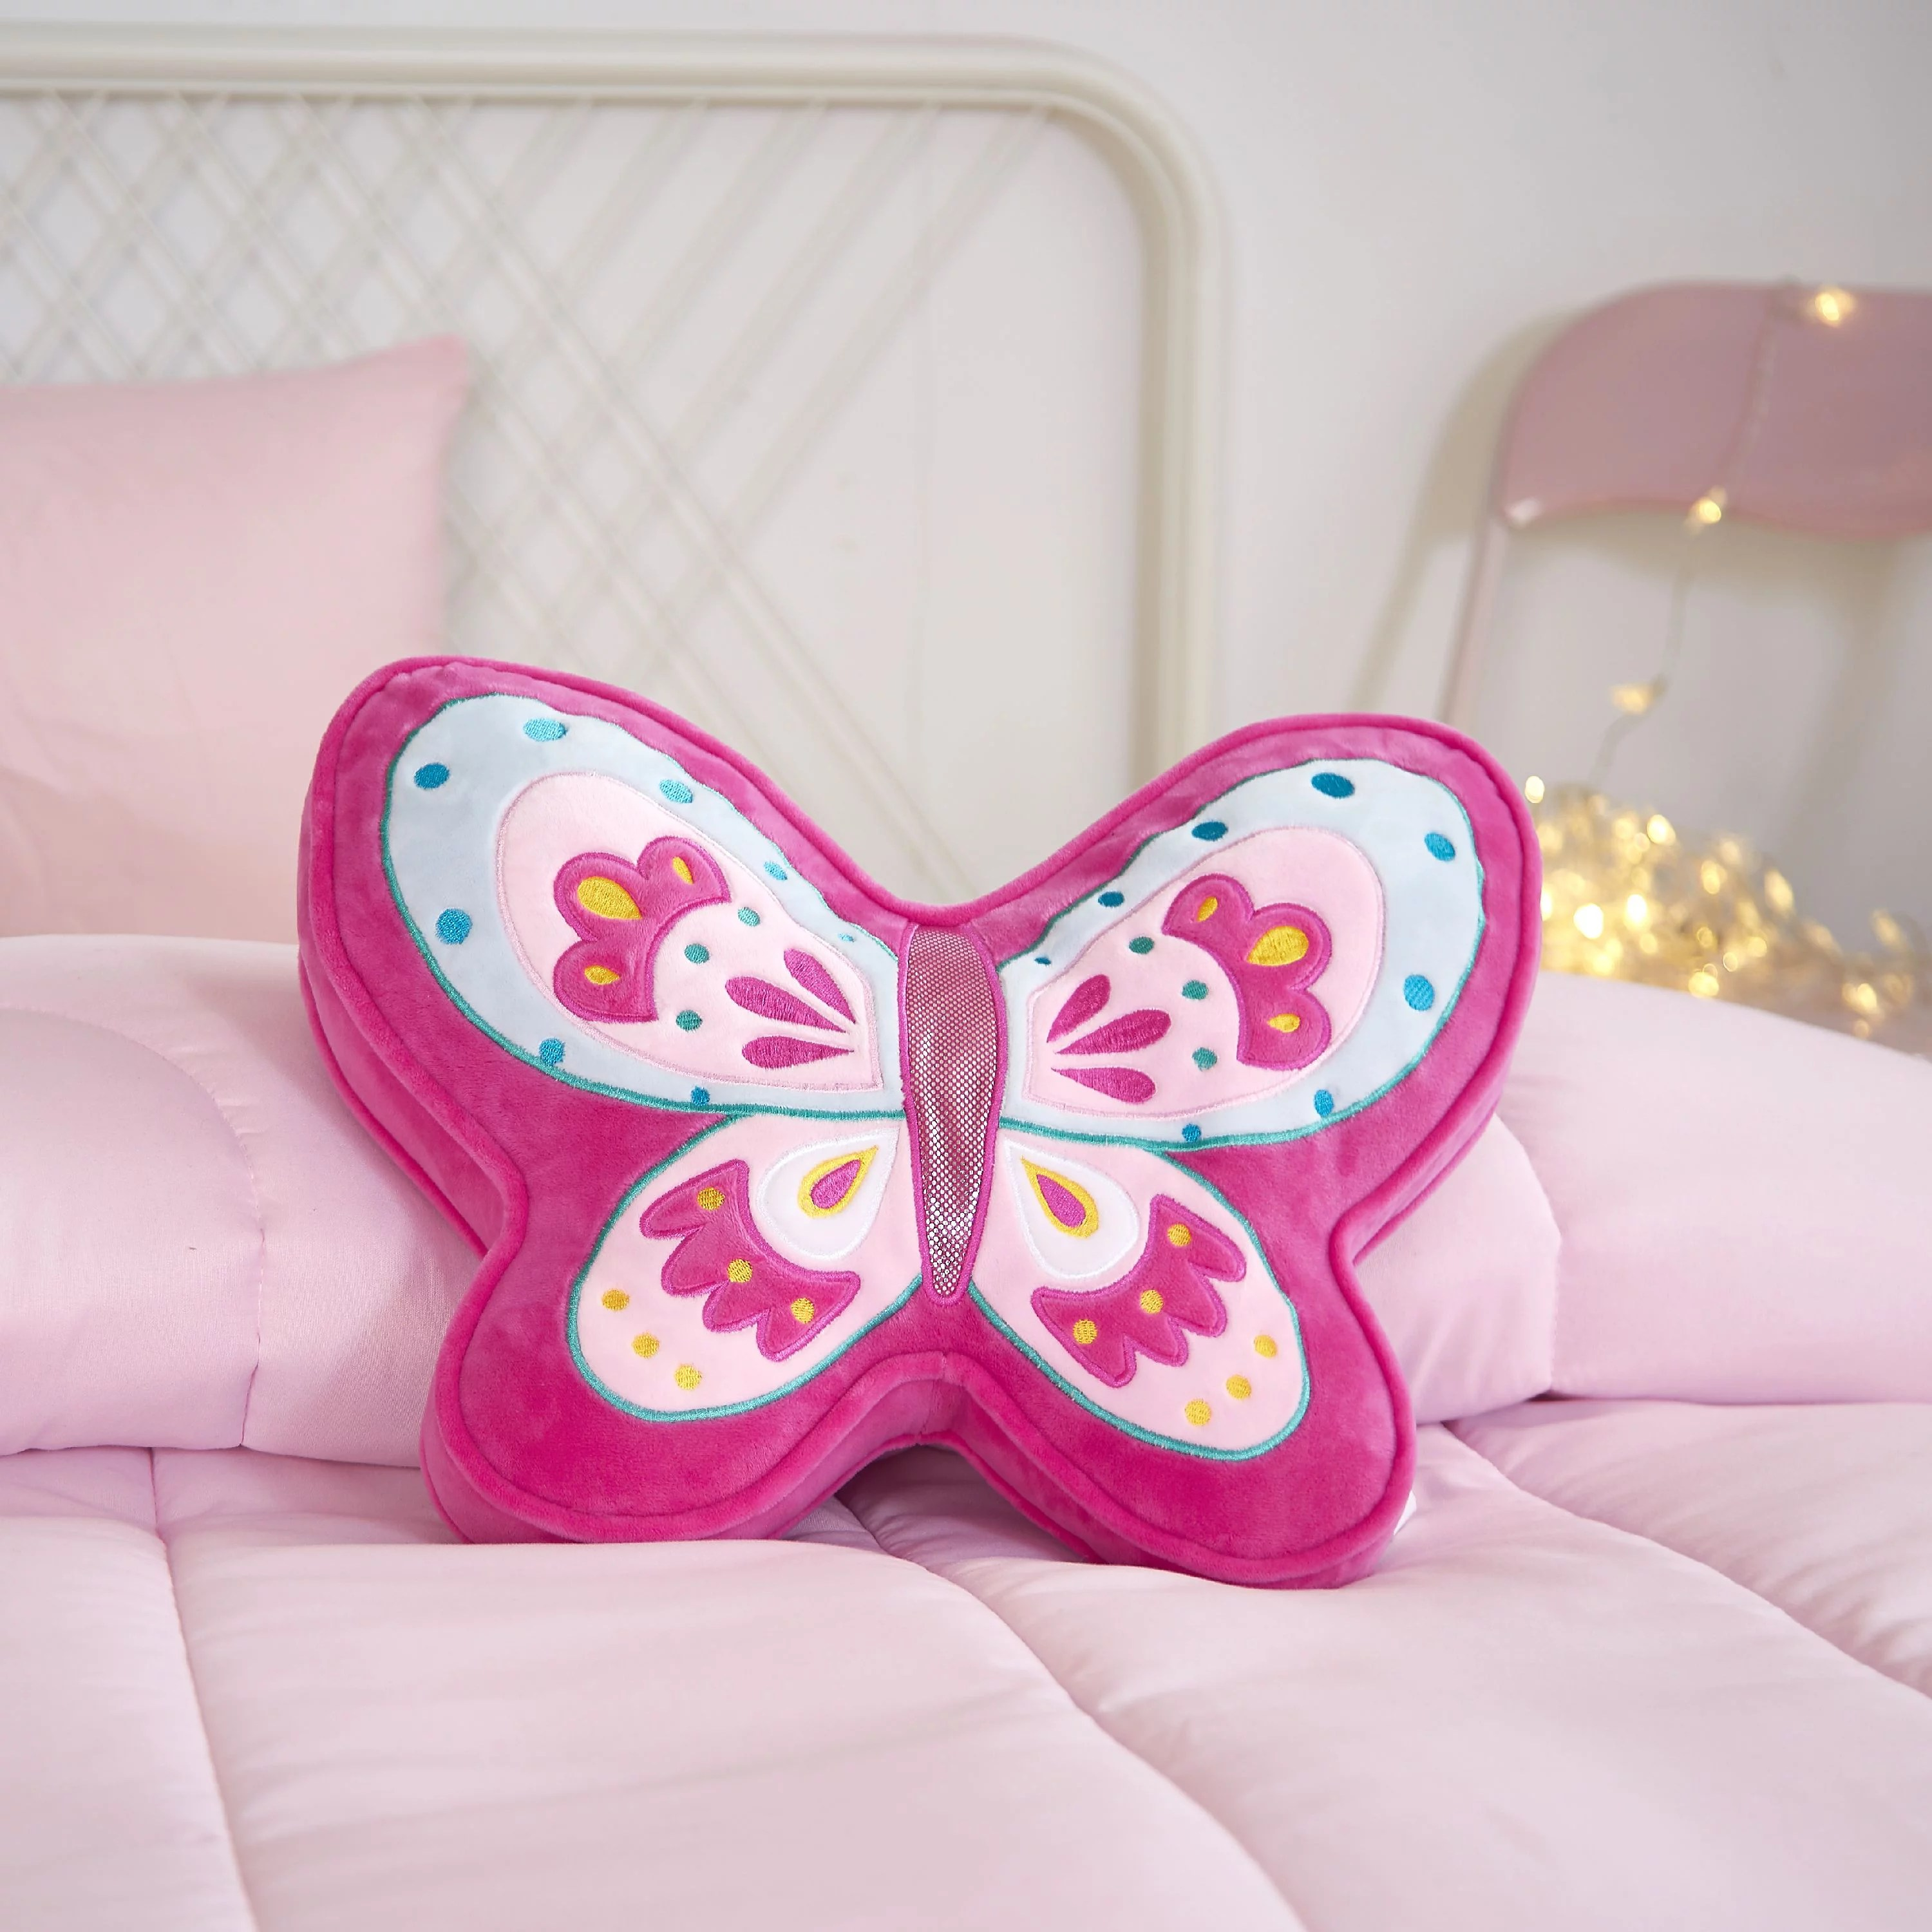 butterfly 3d decorative pillow for kids by your zone